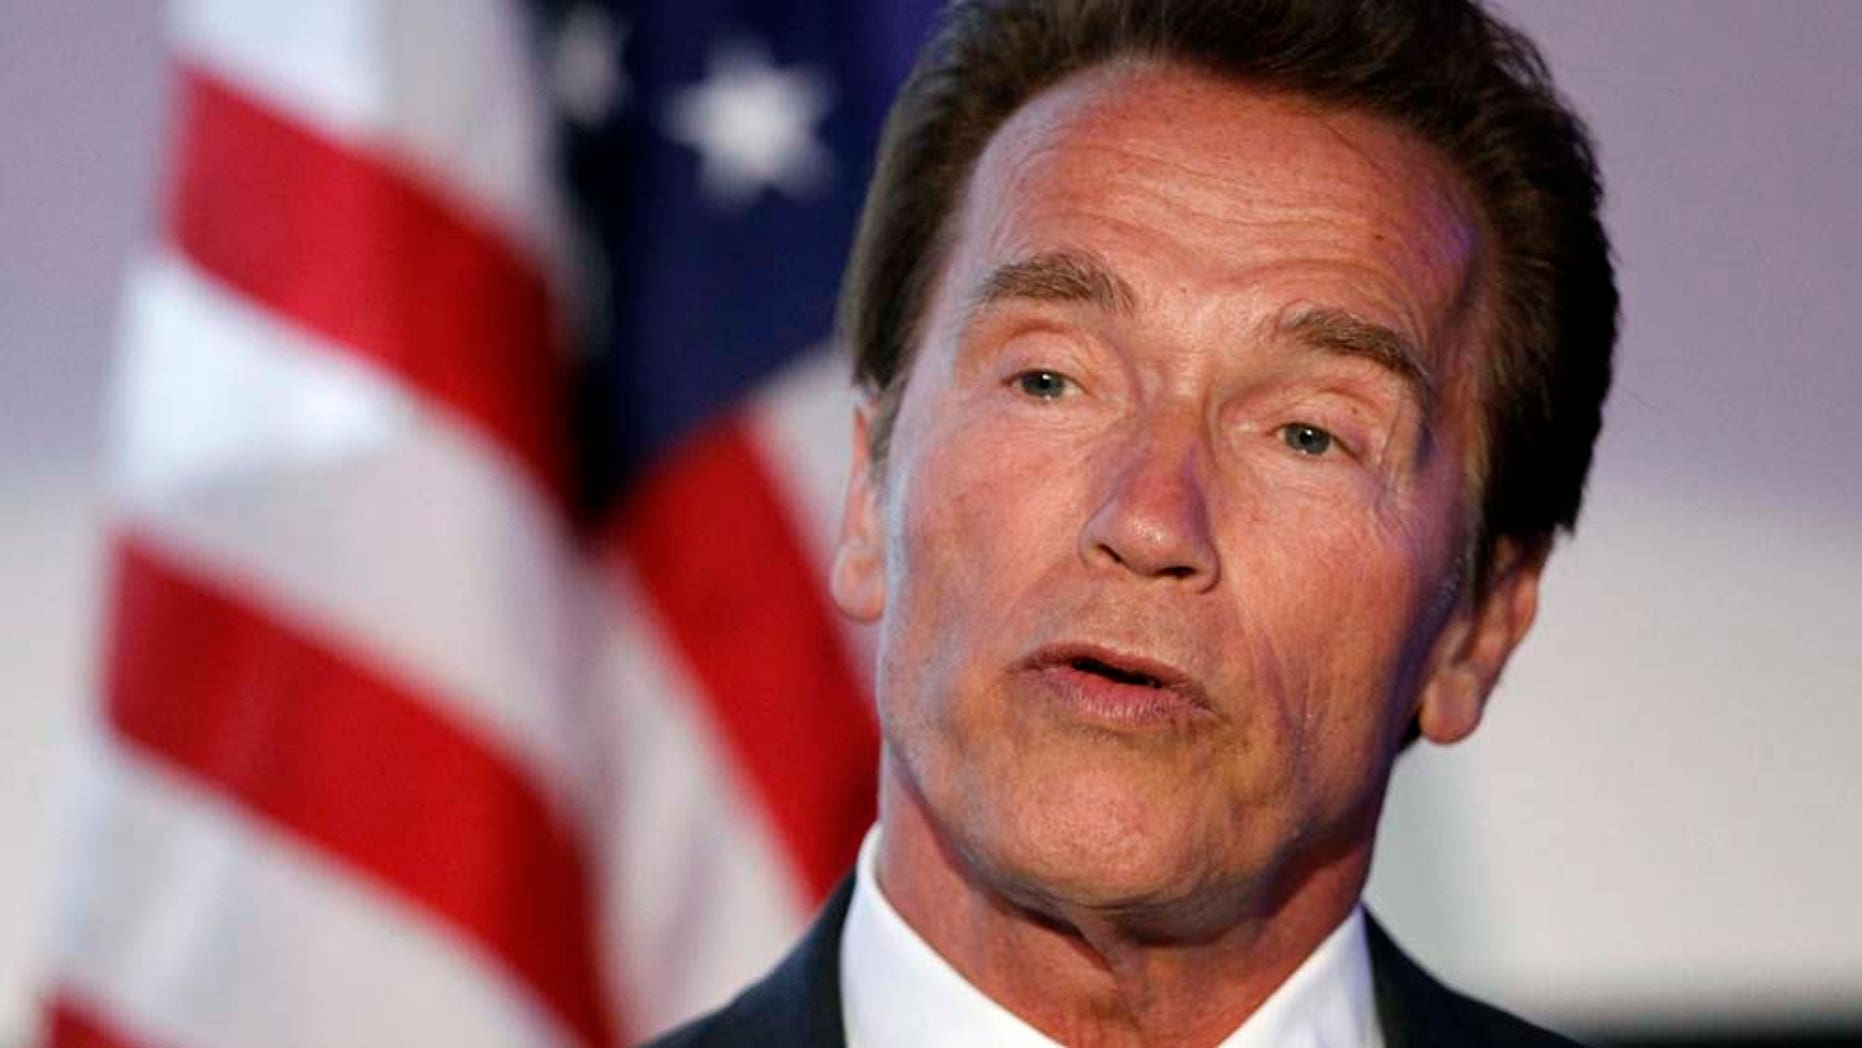 Arnold Schwarzenegger speaks at the Israel 63rd Independence Day Celebration hosted by the Consulate General of Israel in Los Angeles, Tuesday, May 10, 2011. Schwarzenegger was honored at the event. (AP Photo/Matt Sayles)